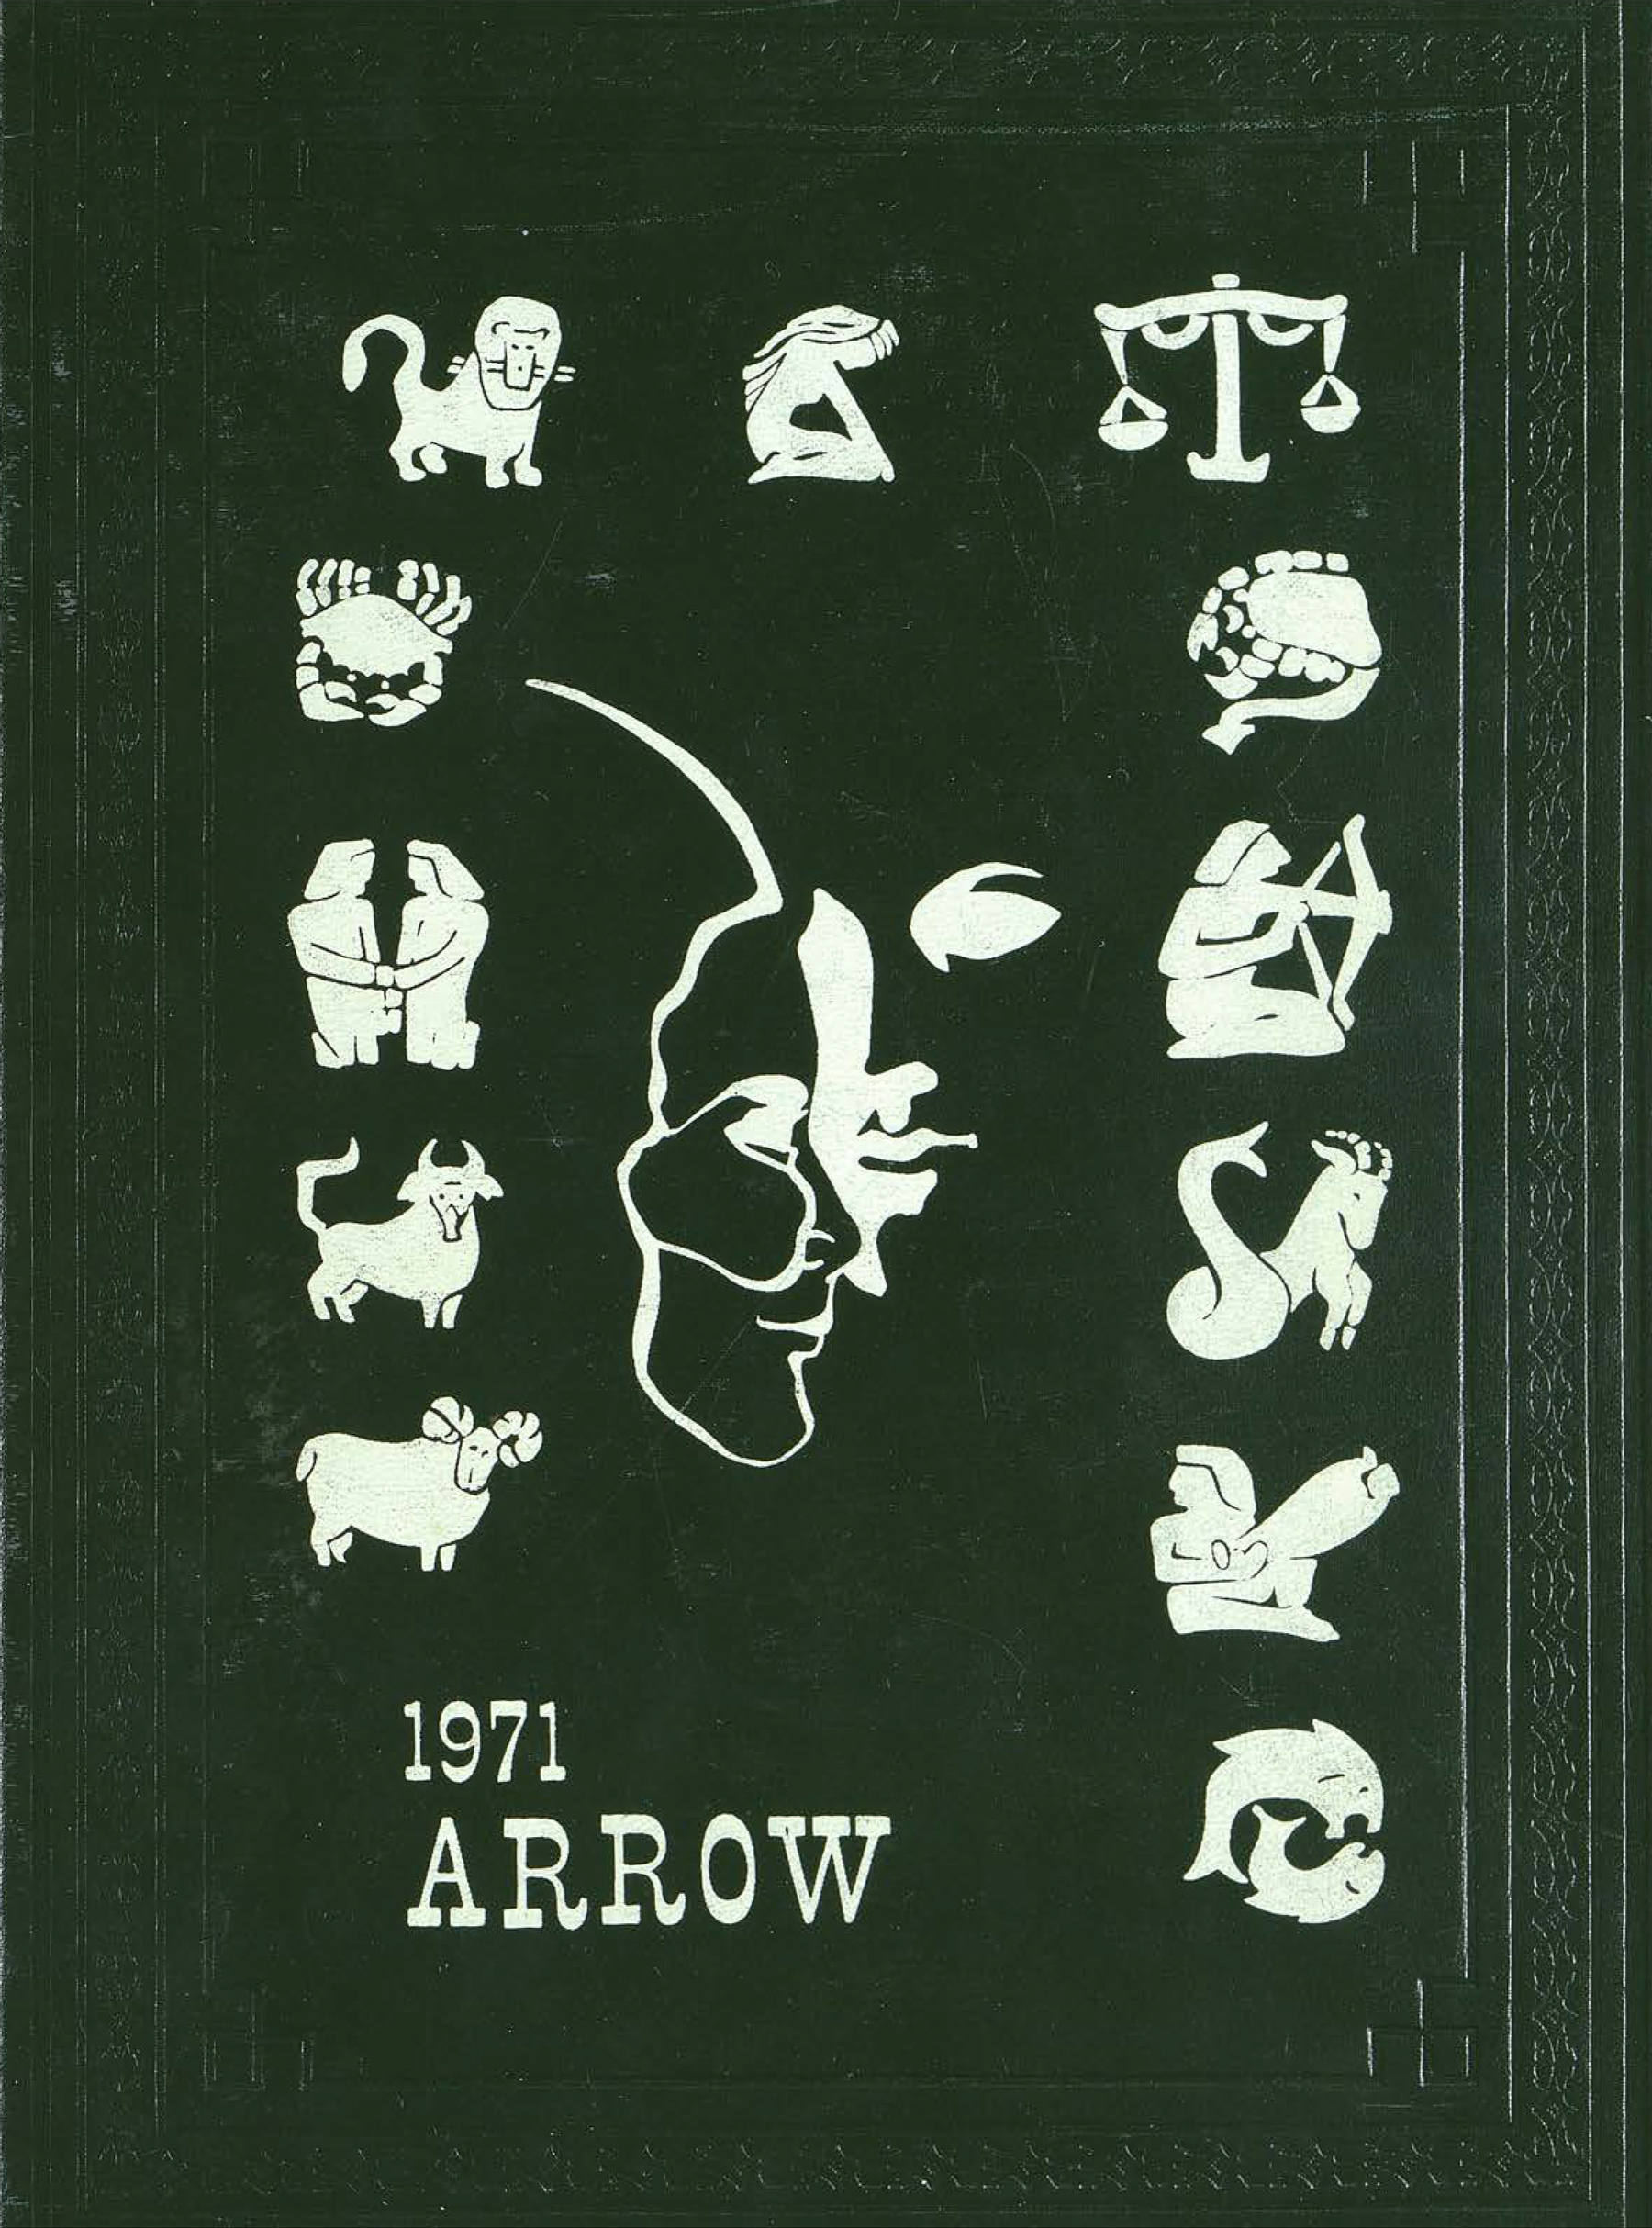 The Arrow 1971